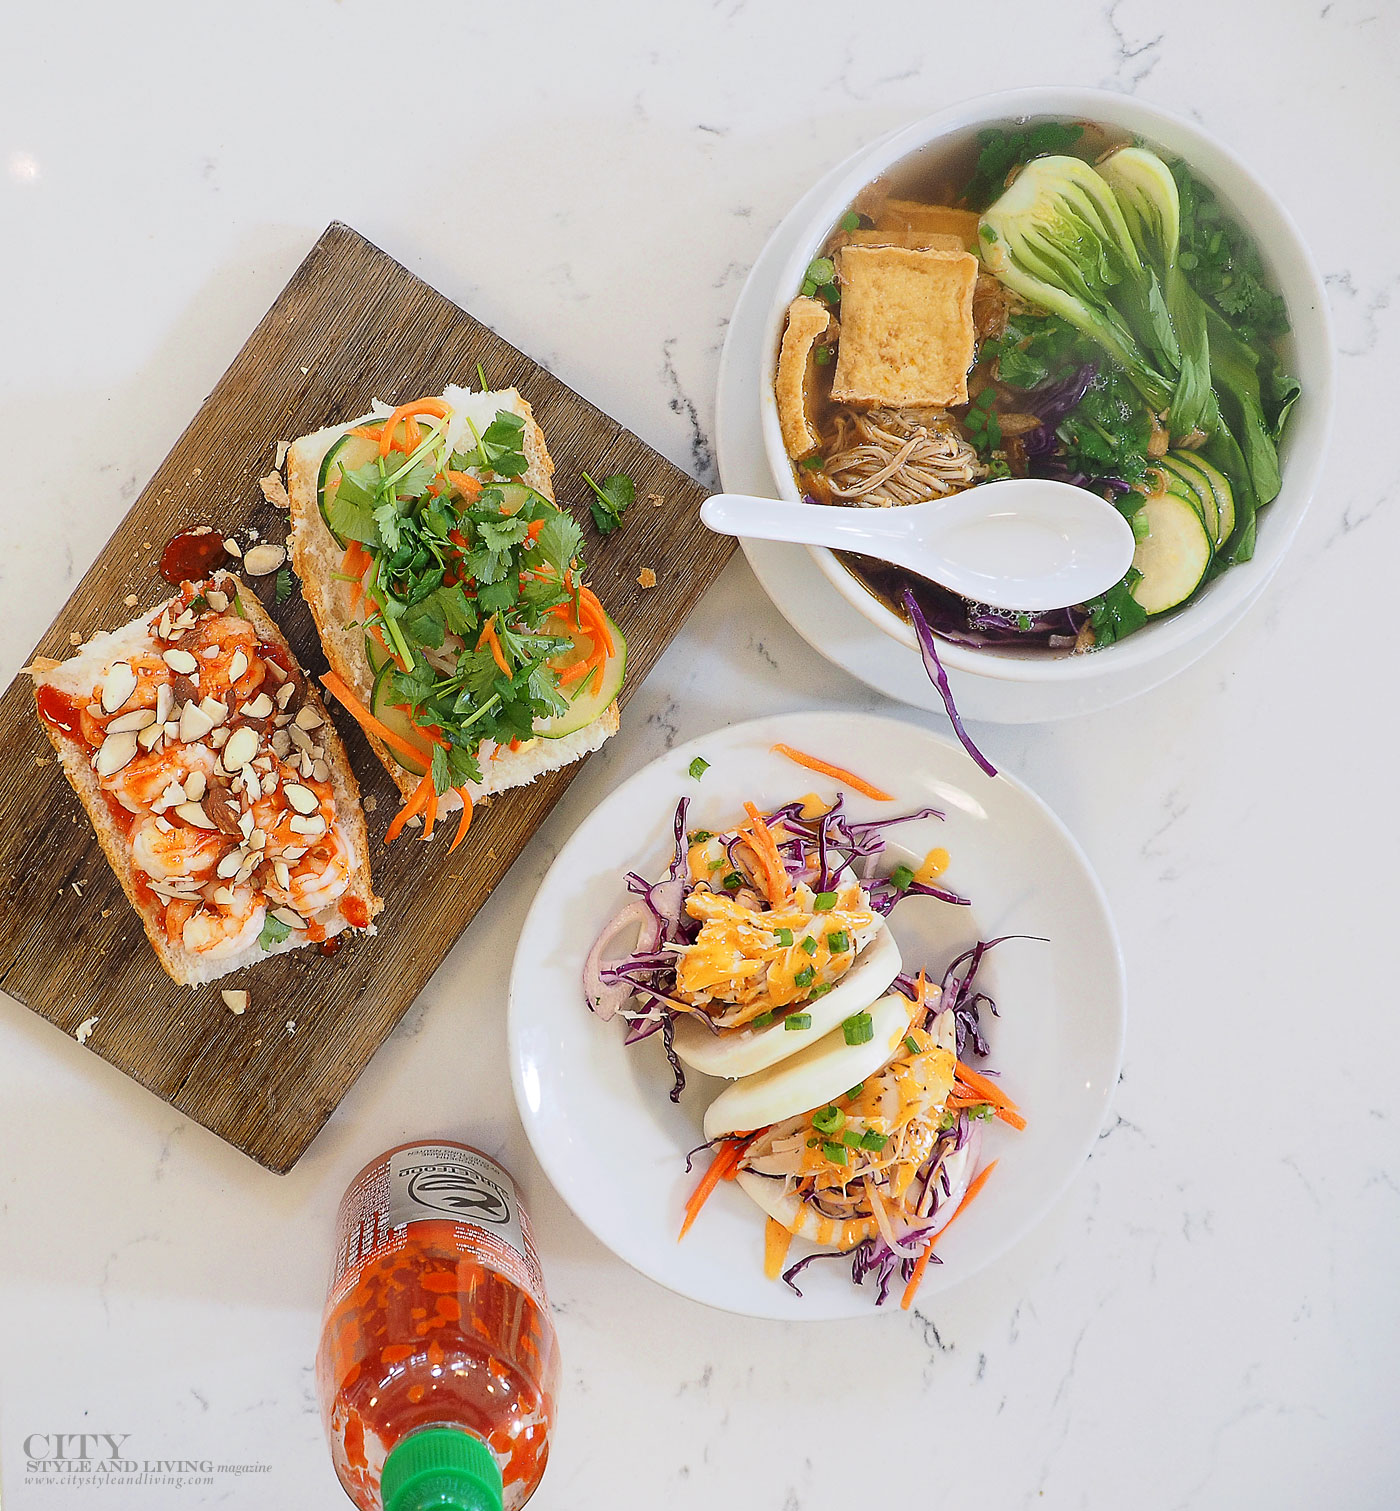 City Style and Living Magazine T2 Streetfood St Roch Market New Orleans Banh Mi,Vegan Pho and bao